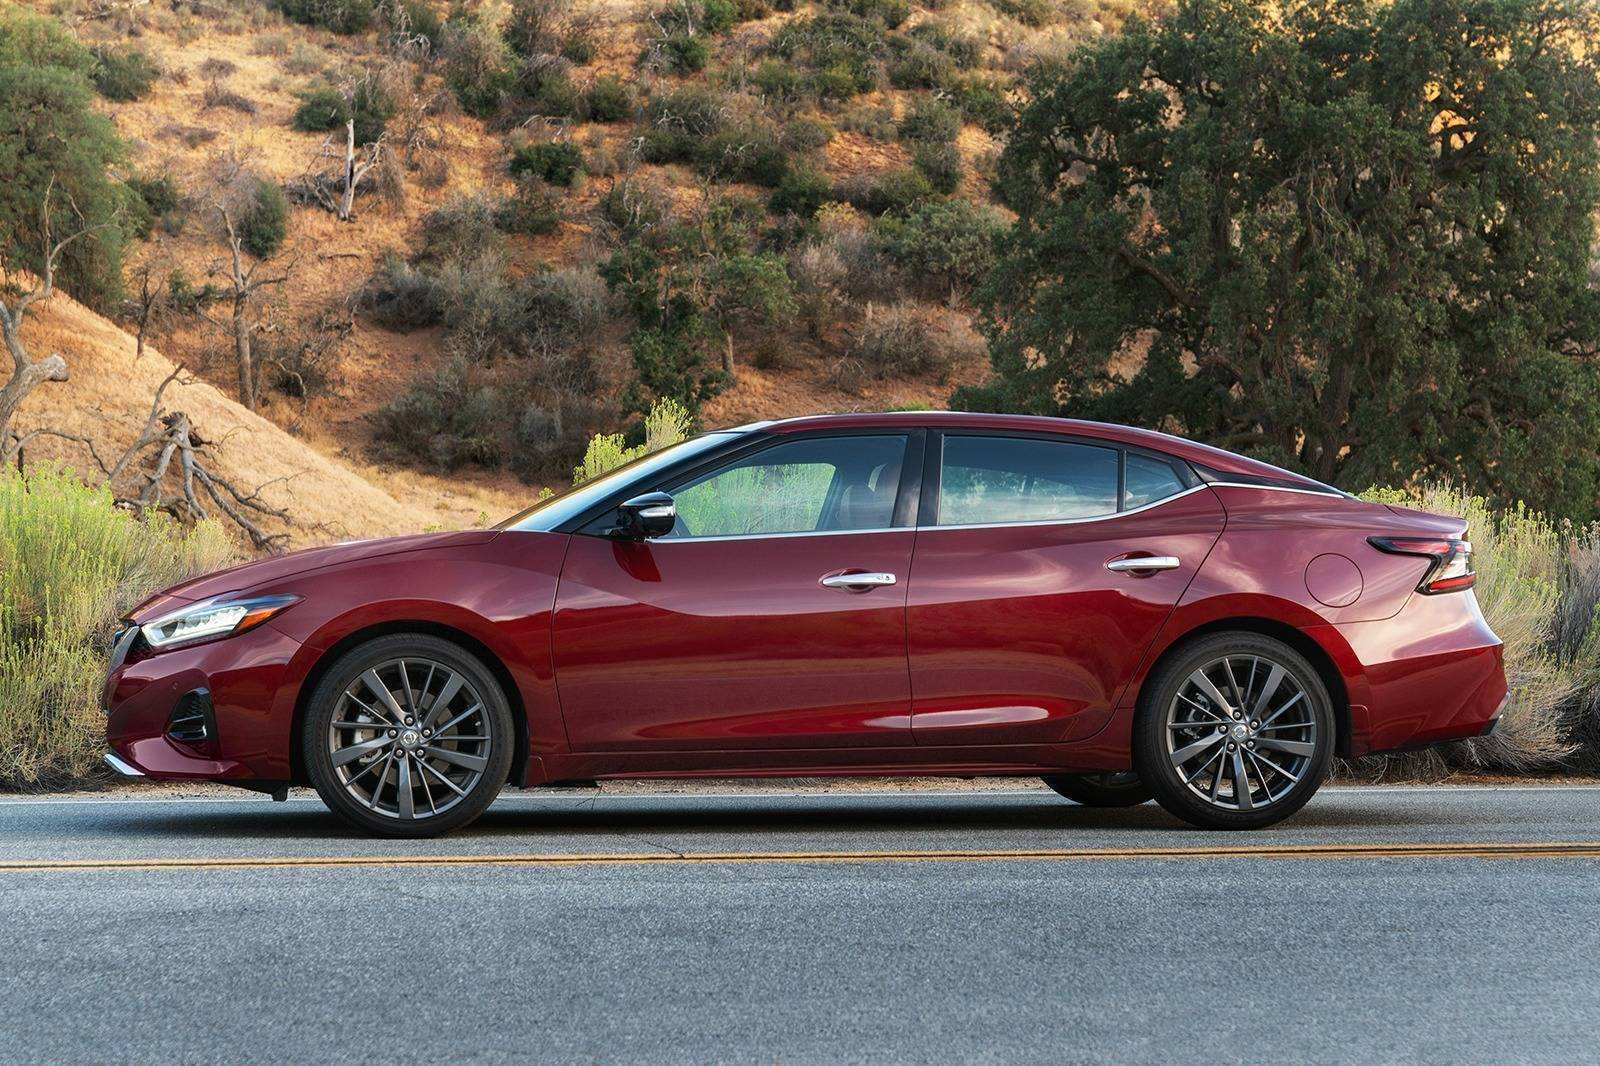 65 New 2019 Nissan Maxima Horsepower Specs And Review